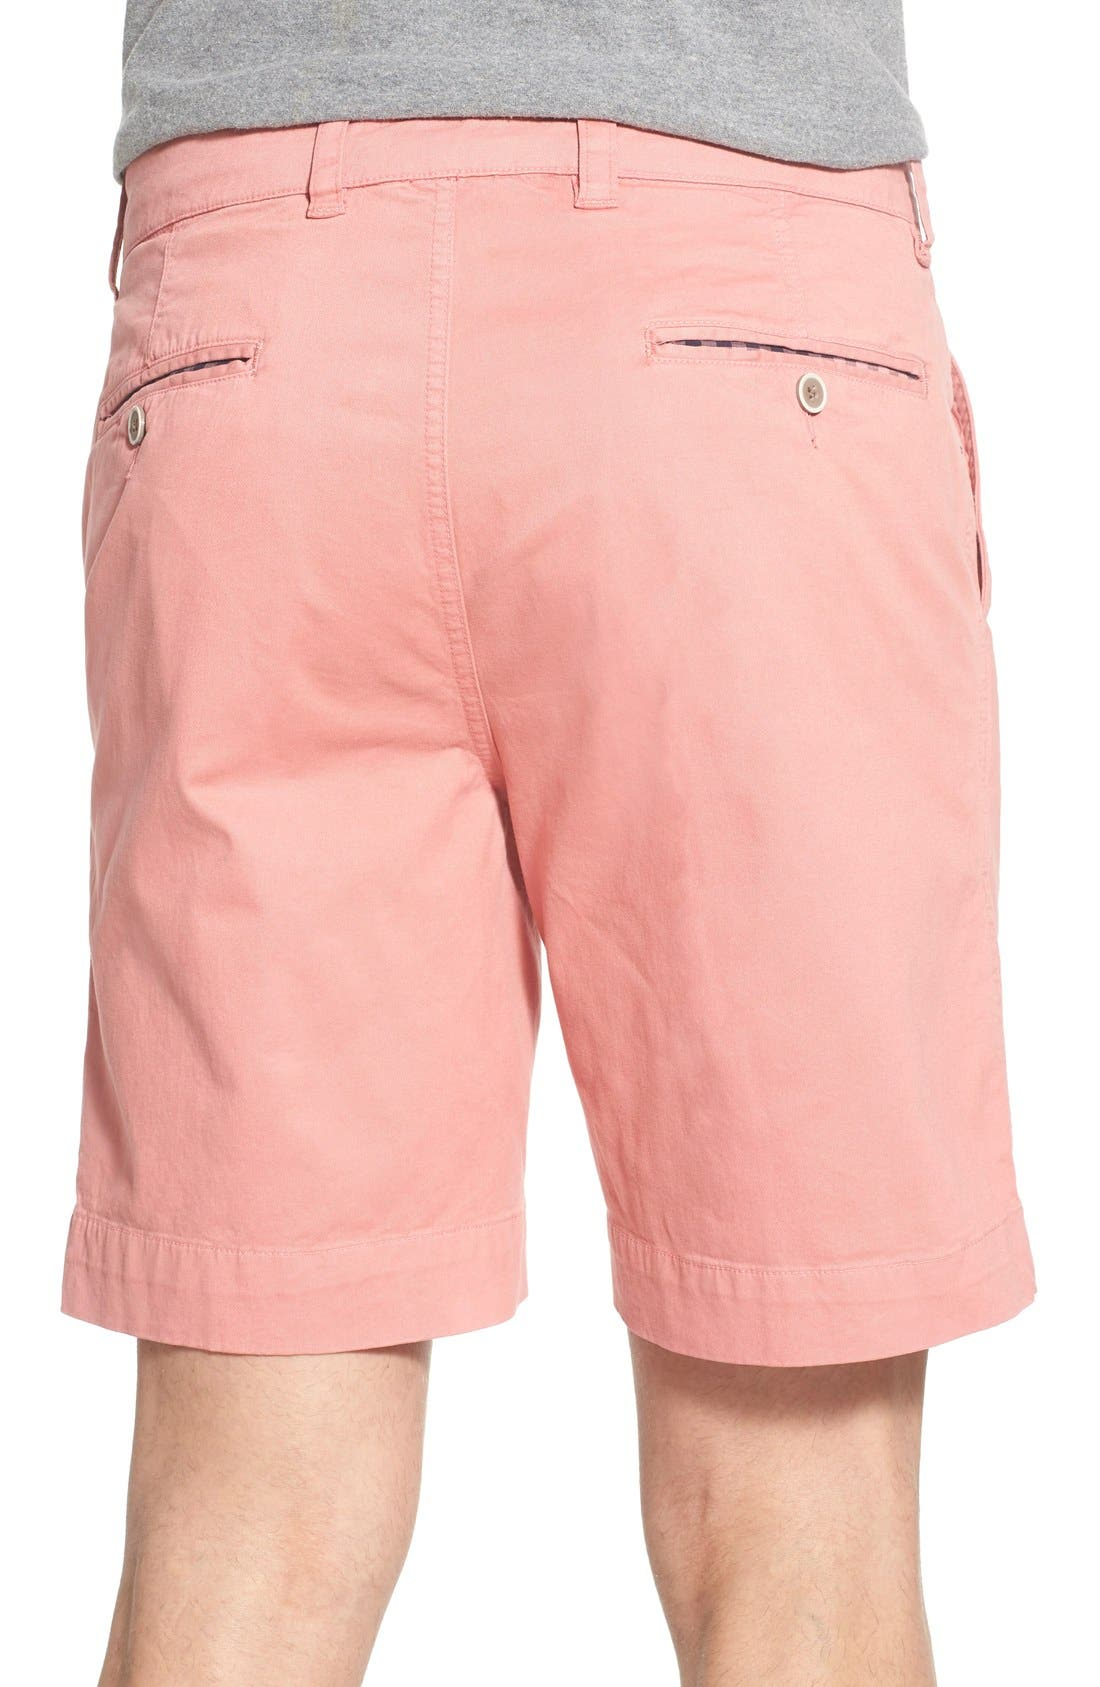 'Sunny' Stretch Chino Shorts,                             Alternate thumbnail 18, color,